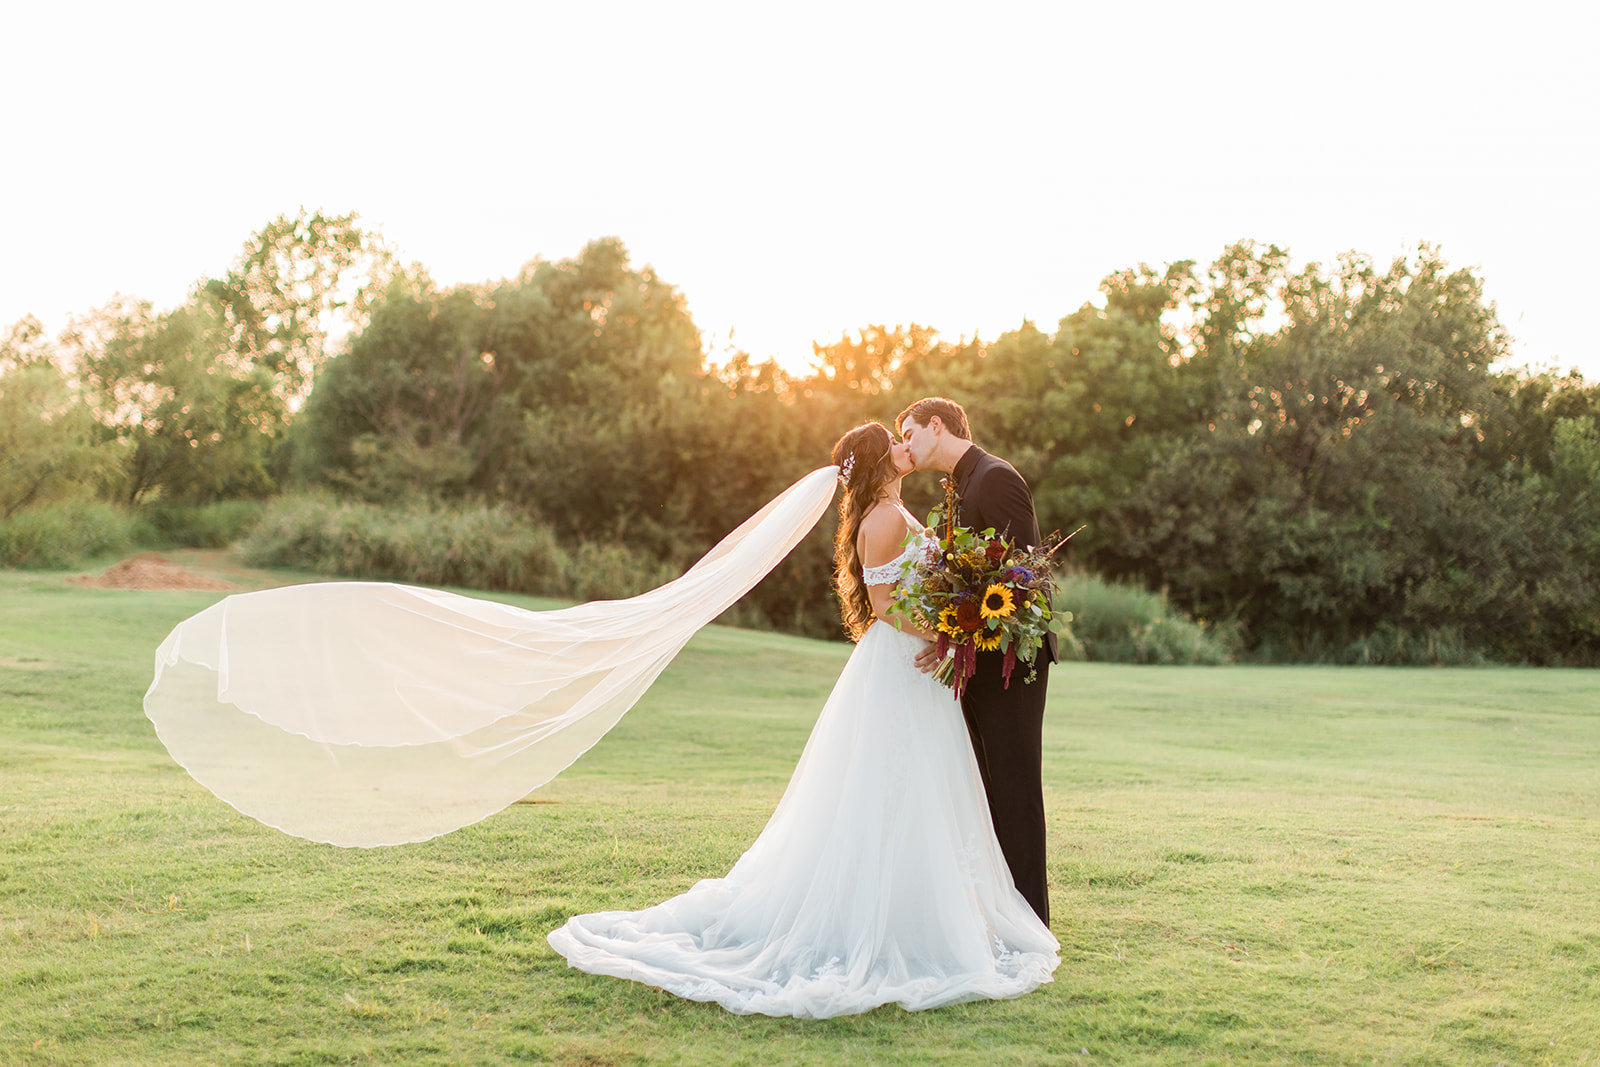 68-wedding-portraits-veil-sunset